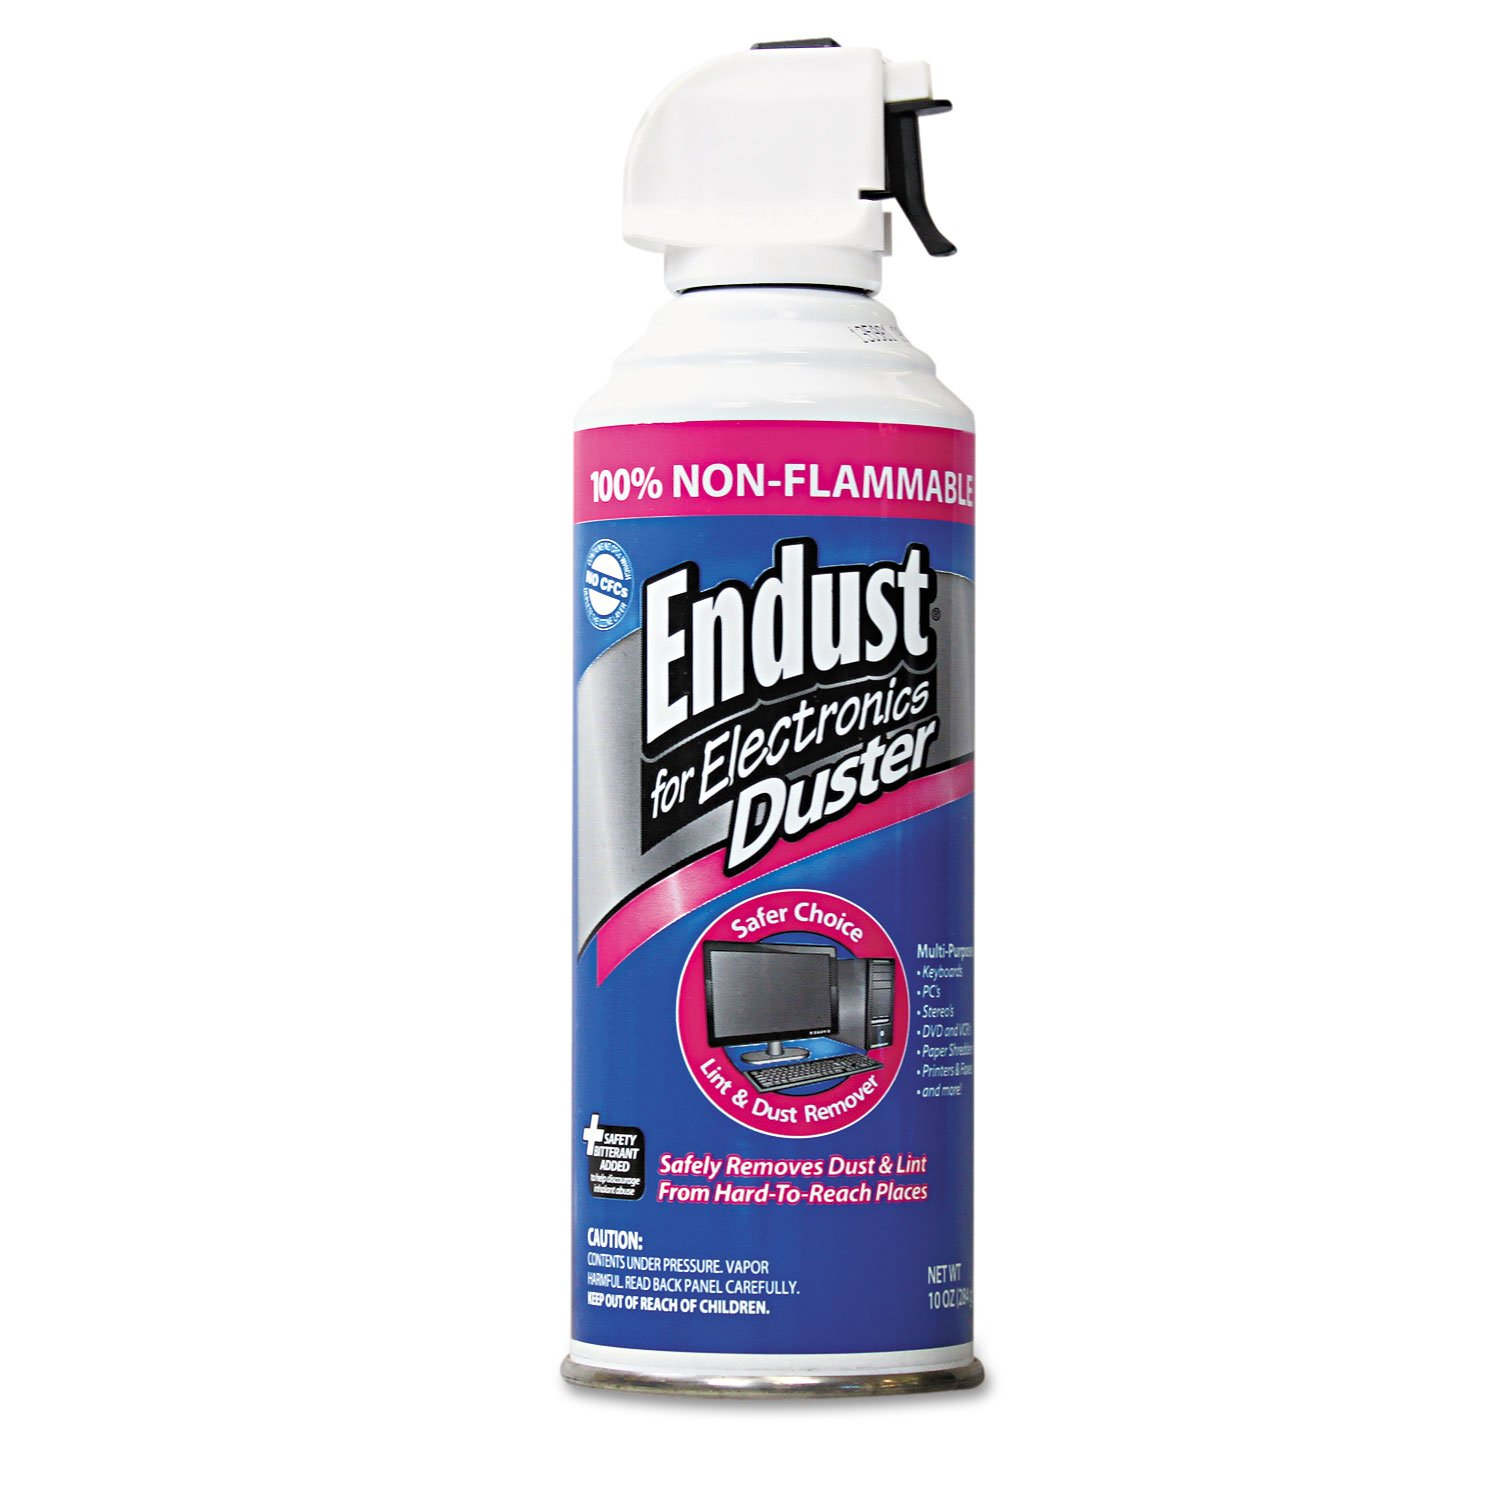 Endust 255050 10oz. Duster Non-Flammable with Bitterant by Endust for Electronics